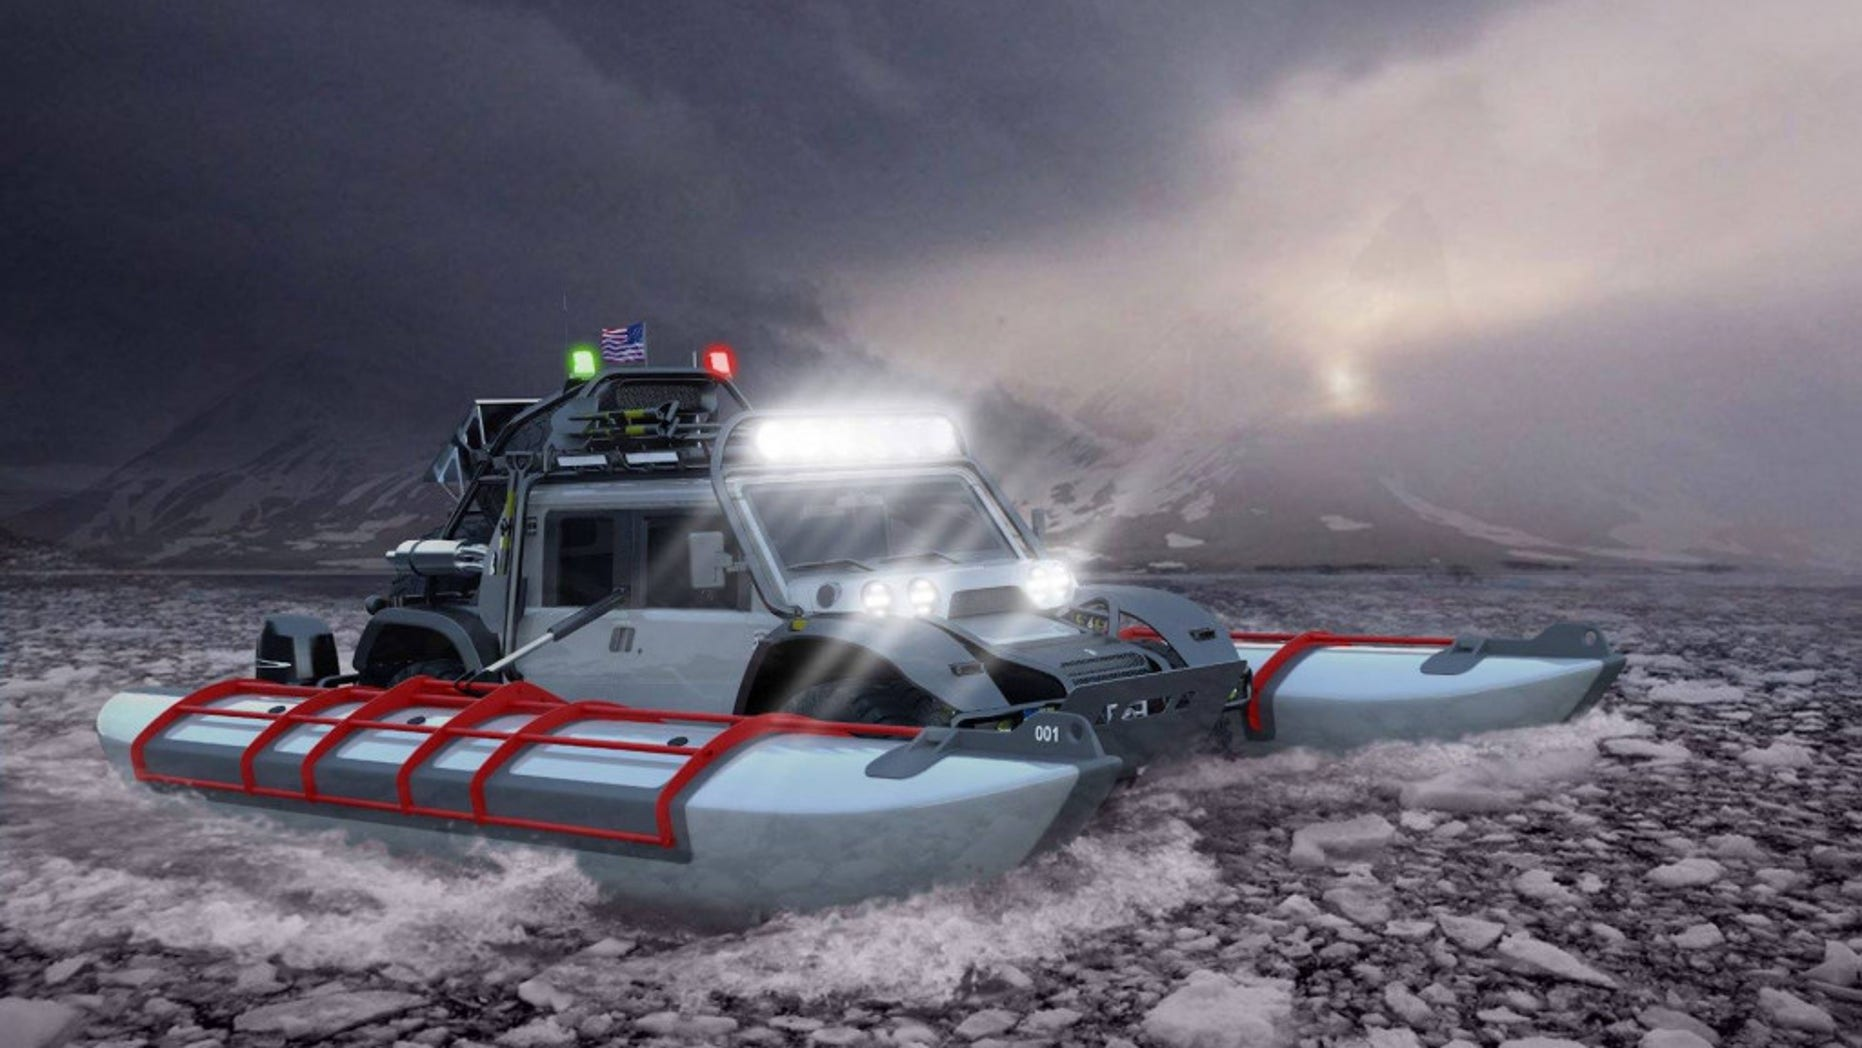 The Baja Boot will be outfitted to cross the Bering Strait